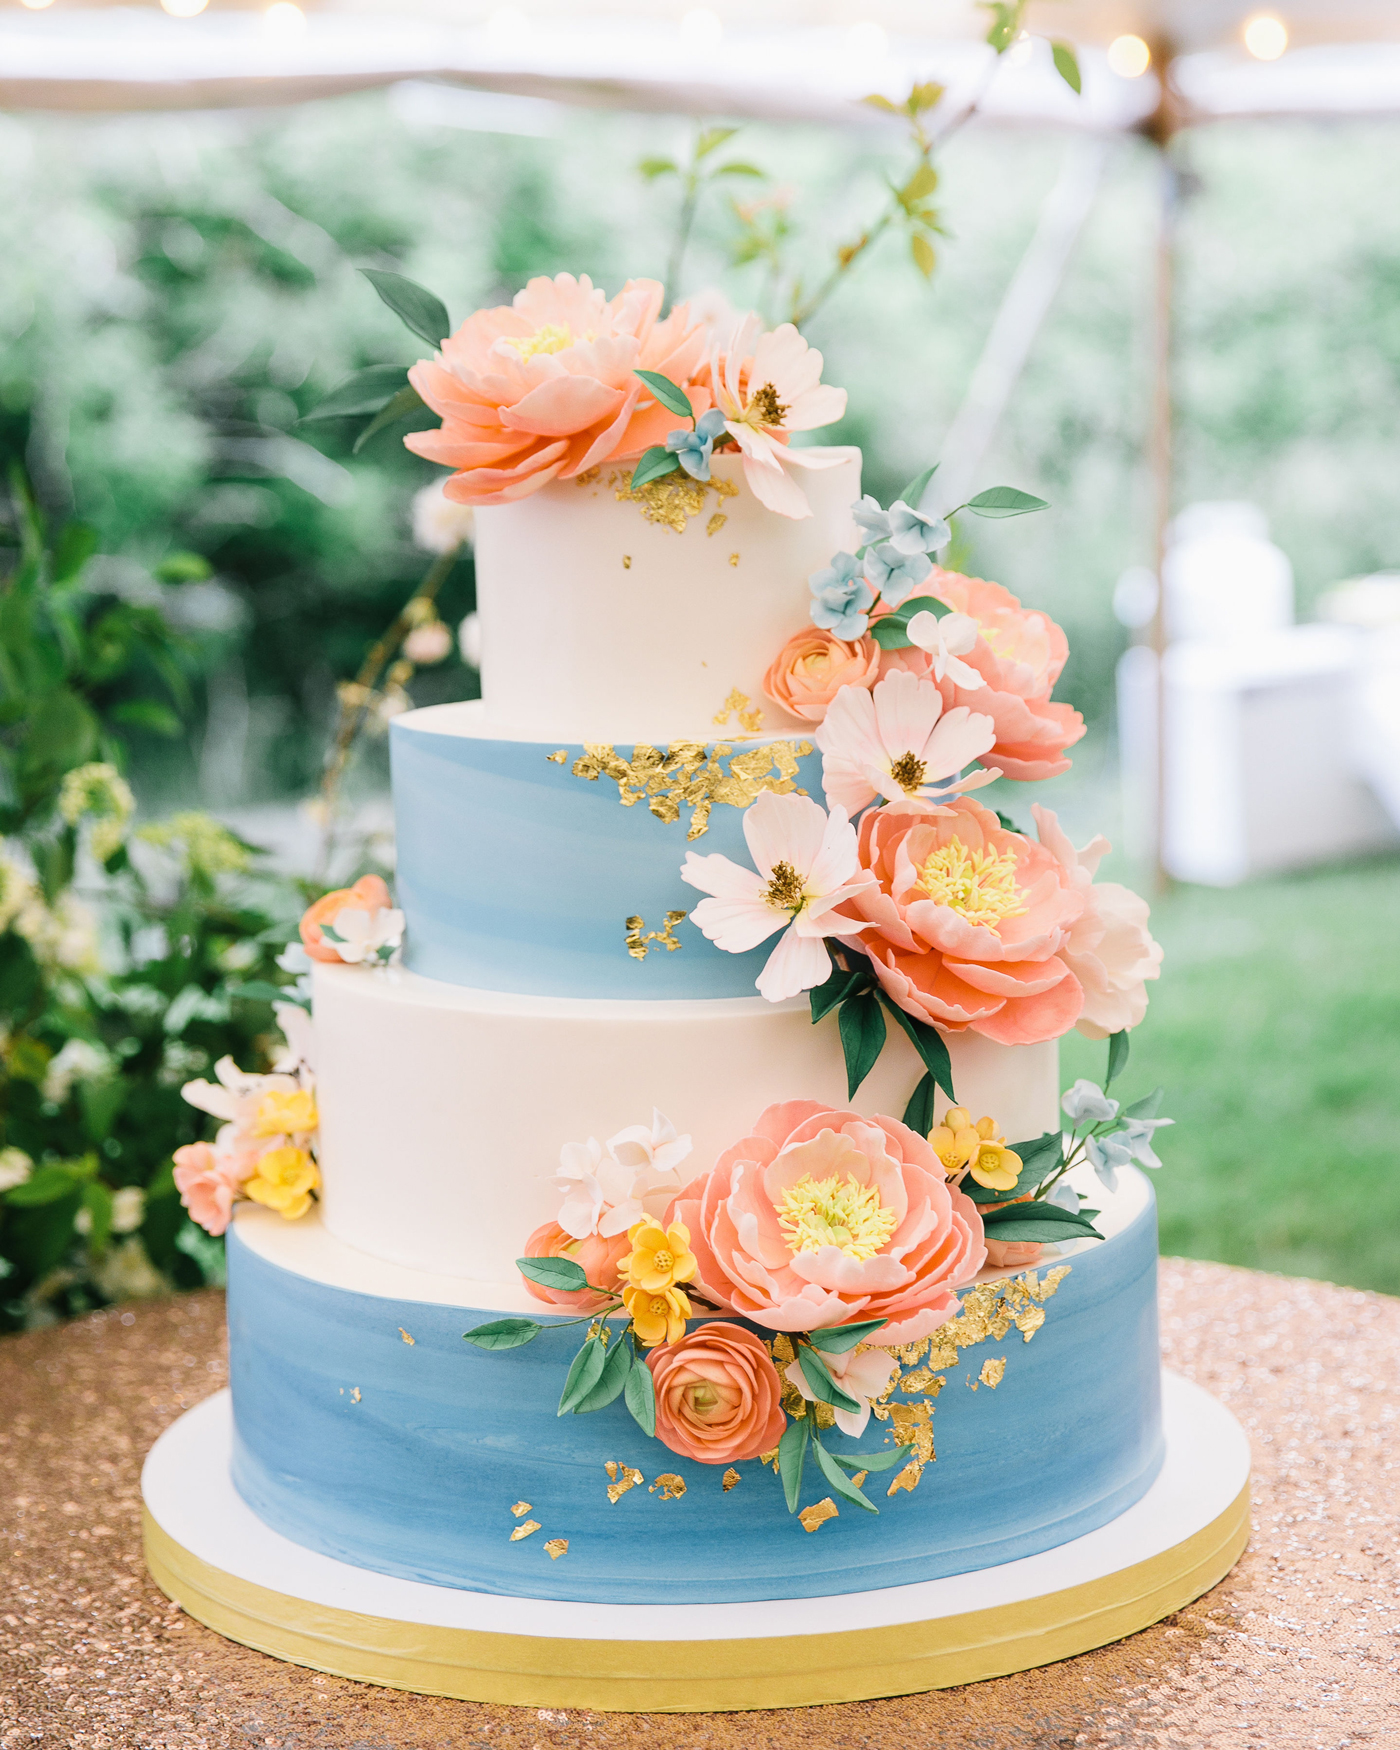 four tiered blue and white frosted wedding cake with pink and yellow floral accents